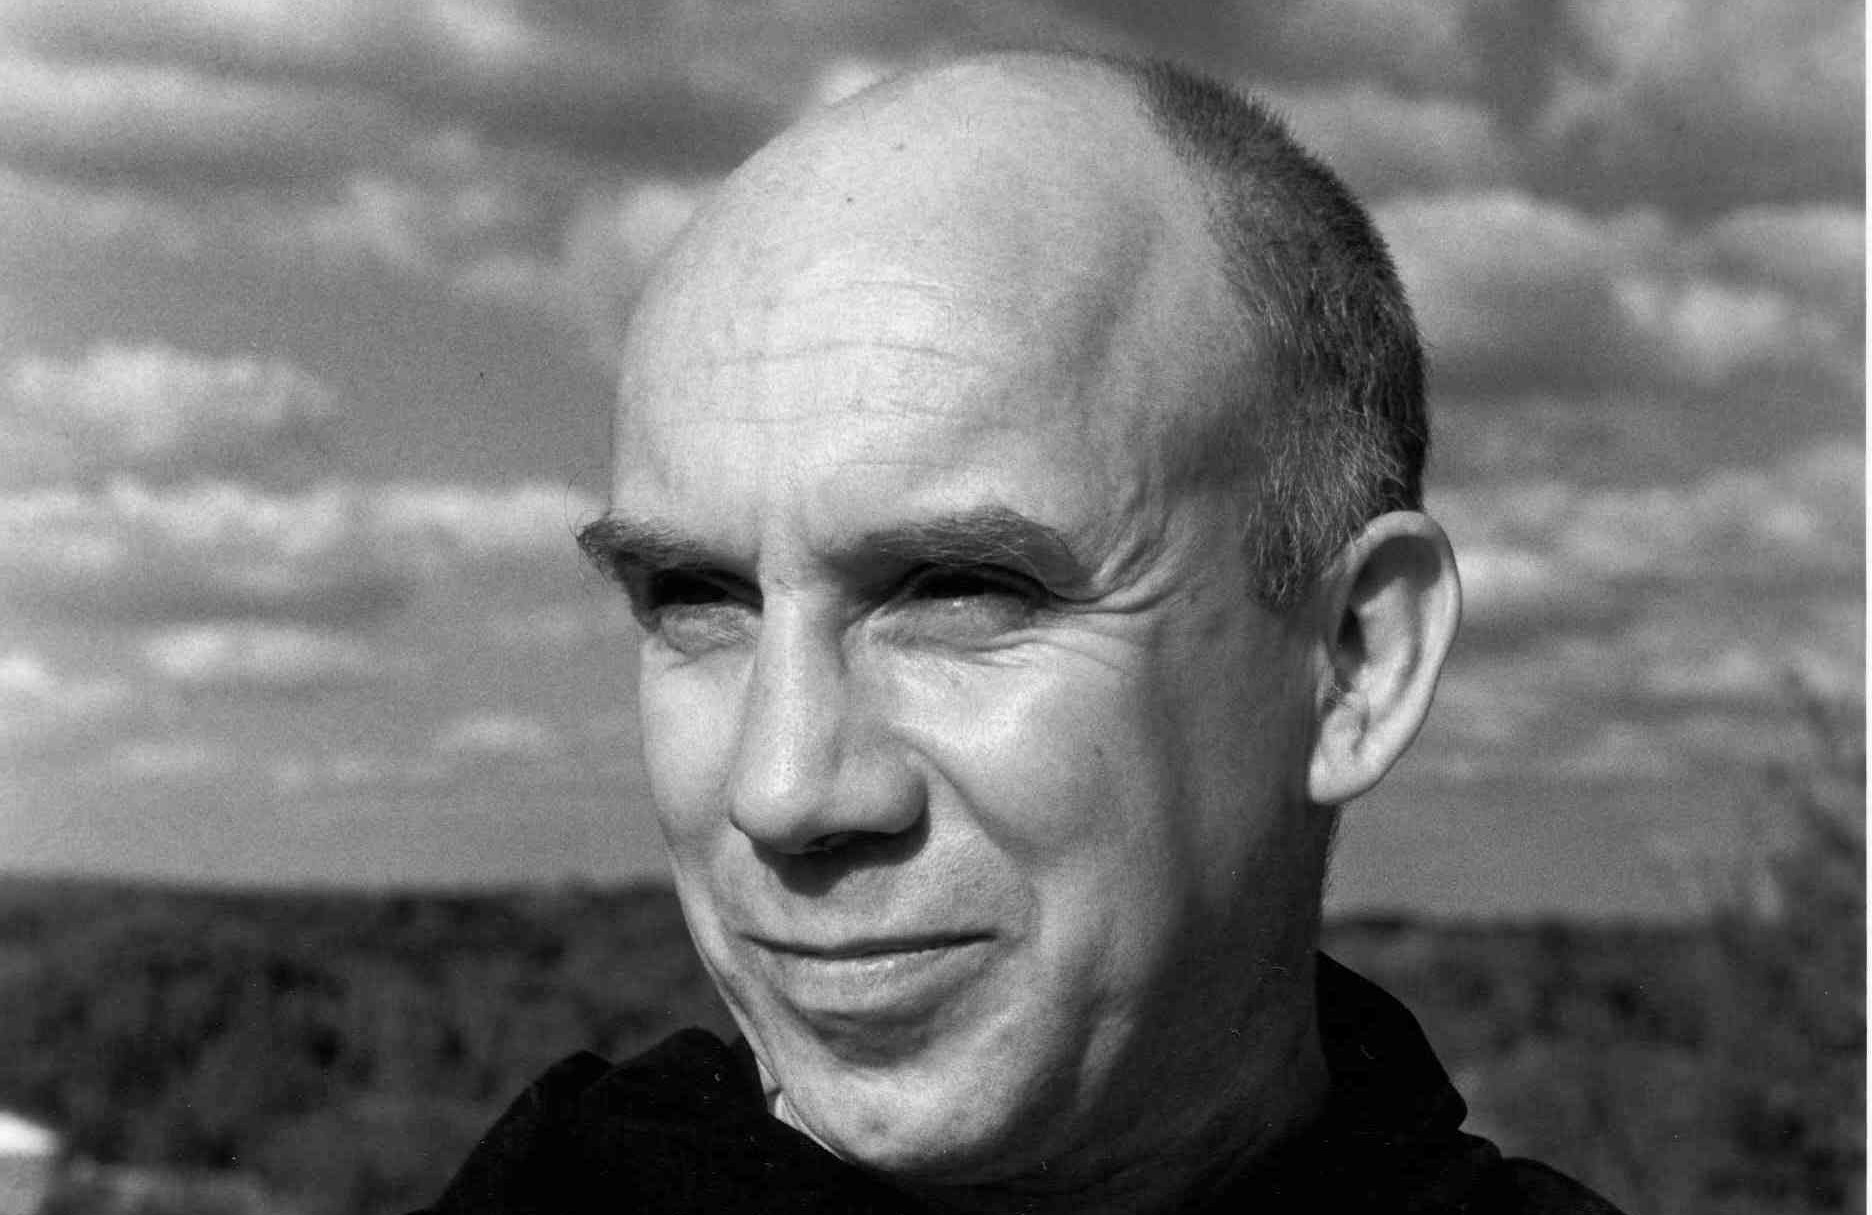 Lezing over Thomas Merton in Leeuwarden